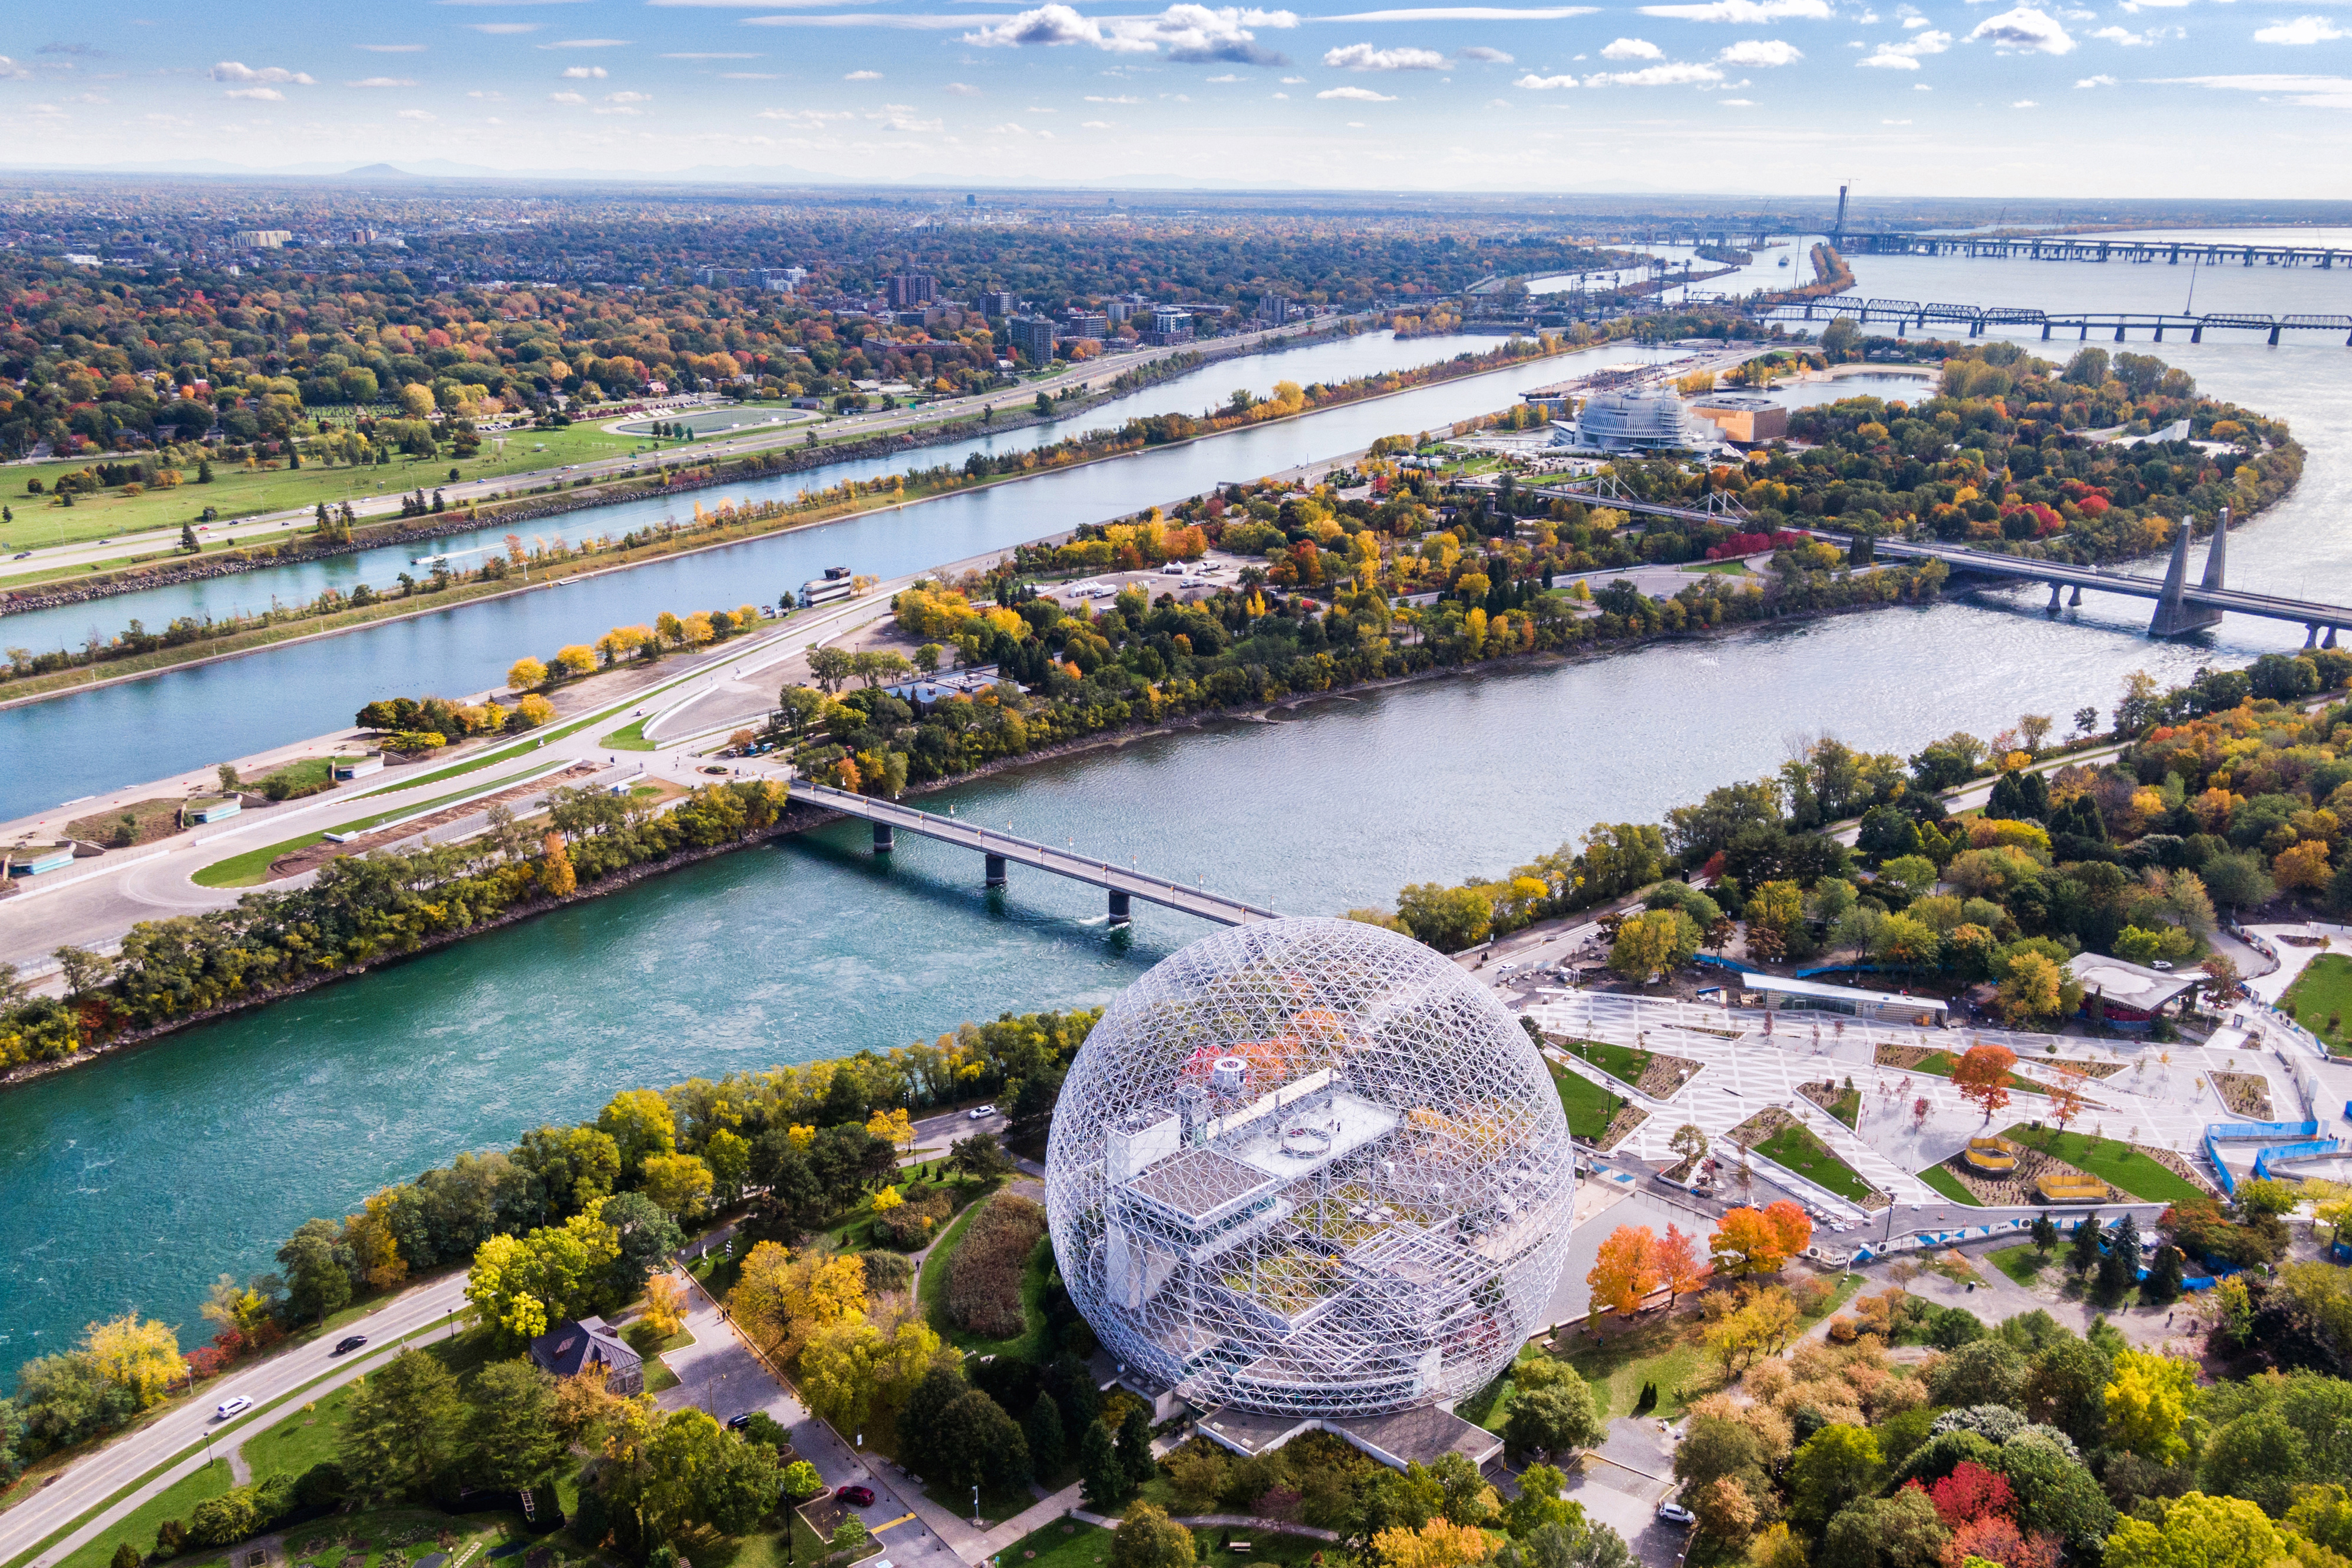 33rd CINP World Congress of Neuropsychopharamcology | 1 - 4 November 2021 in Montreal, Canada | The International College of Neuropsychopharmacology, CINP, CINP 2021, neuropsychopharmacology conference, neuropsychopharmacology congress, virtual conference, virtual congress, neuropsychopharmacology, psychology, neurology, neurochemicals, neuropsychology, neuroscience conference, neuroscience congress, neuropsychopharmacology exhibition, neuropsychopharmacology summit